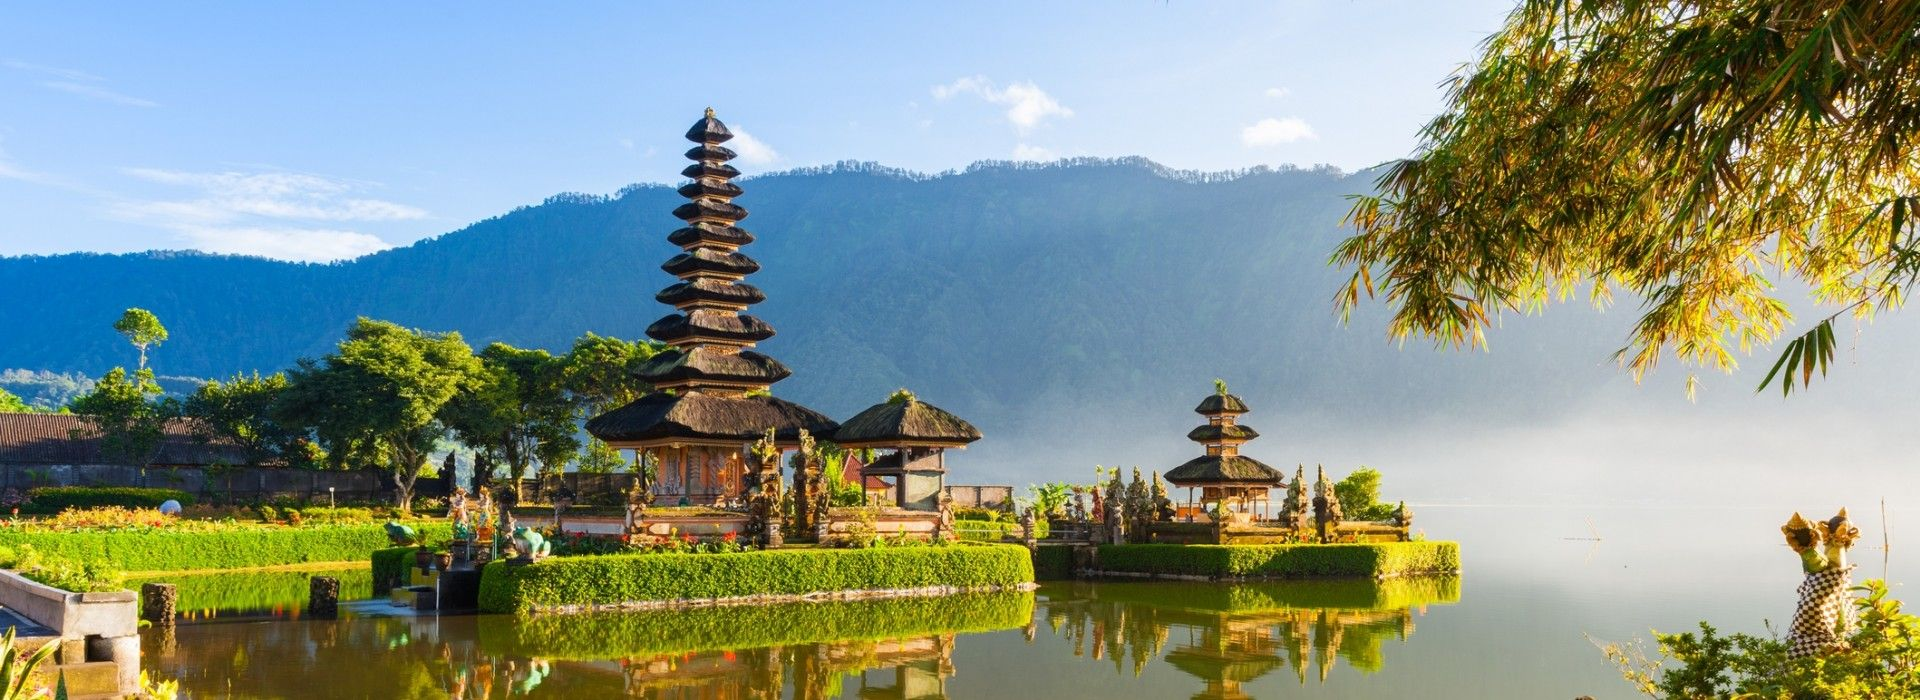 Special interests and hobbies Tours in Indonesia